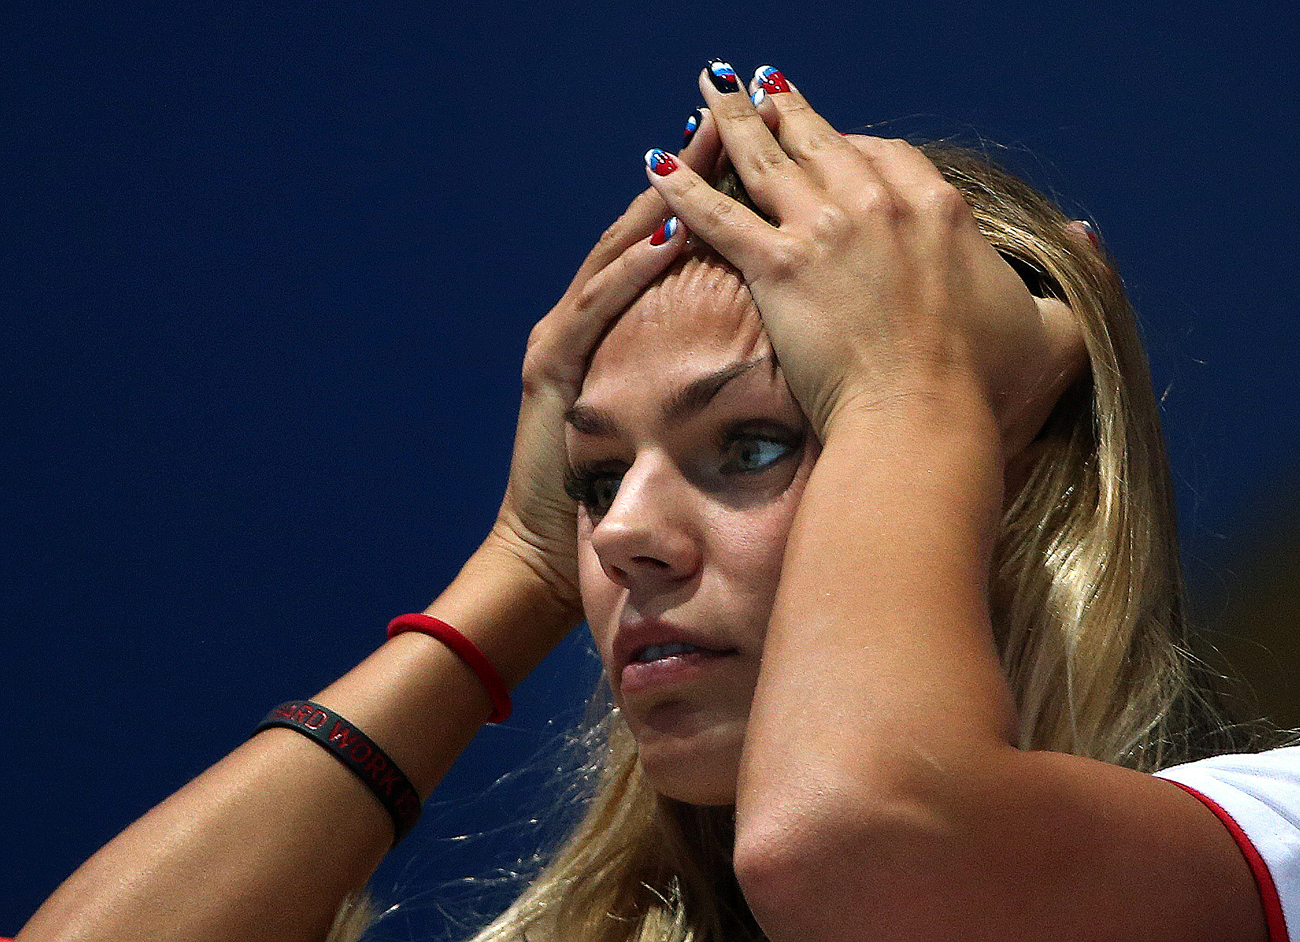 Russia's swimmer Yuliya Efimova may appeal her ban to the Court of Arbitration for Sport.